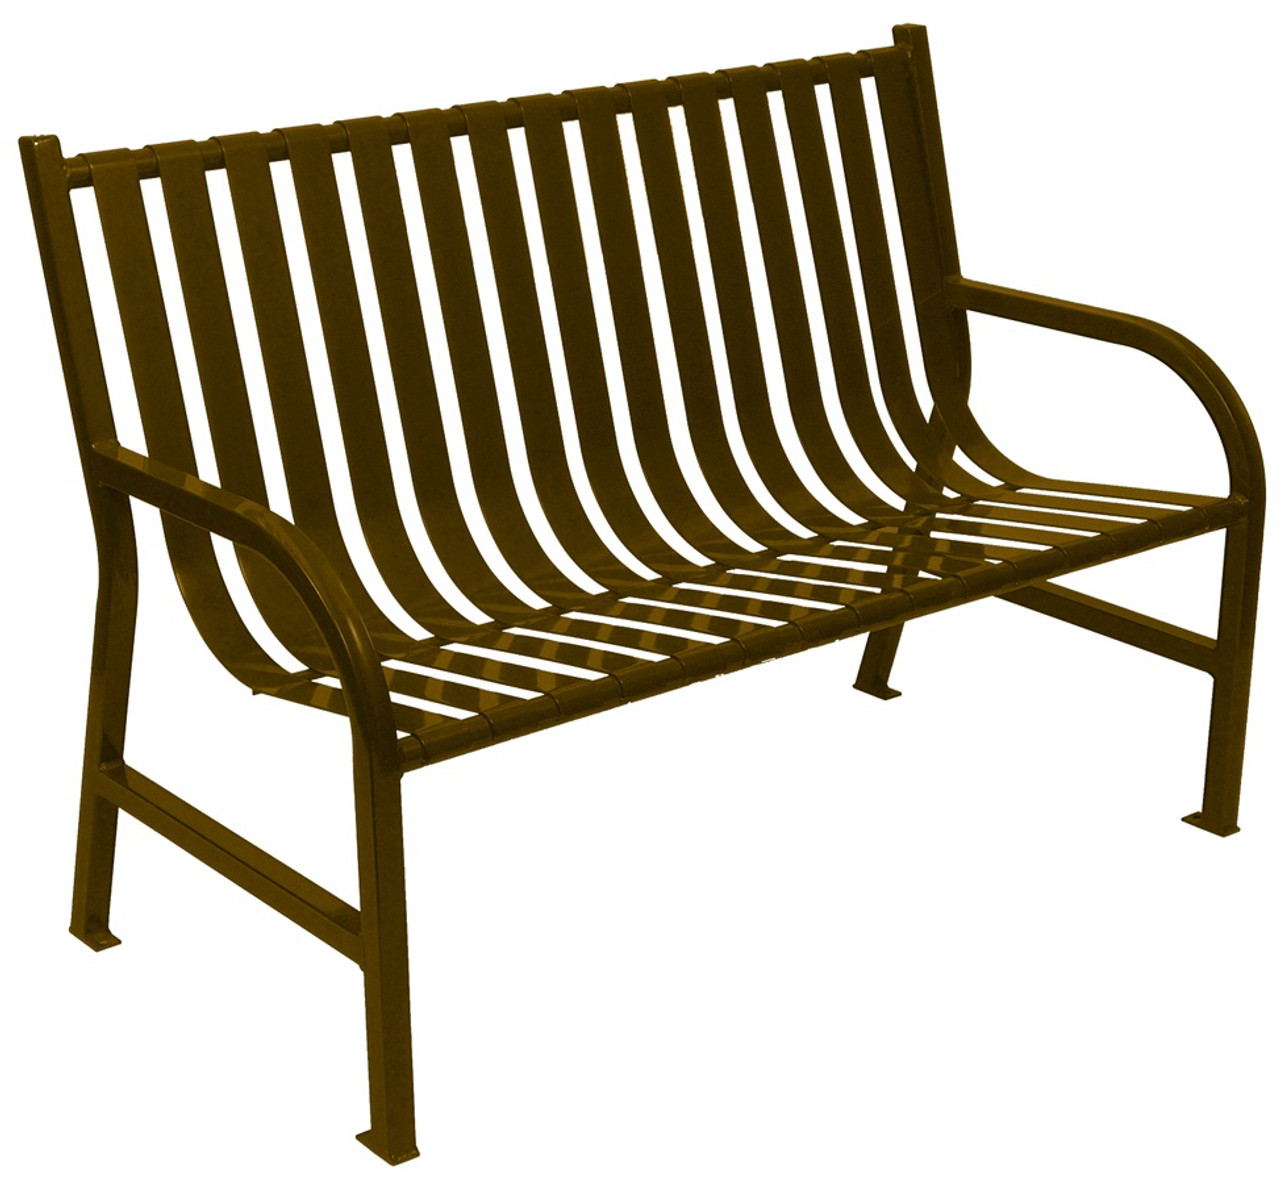 Witt Industries Oakley Outdoor Slatted Bench 4 Foot Brown